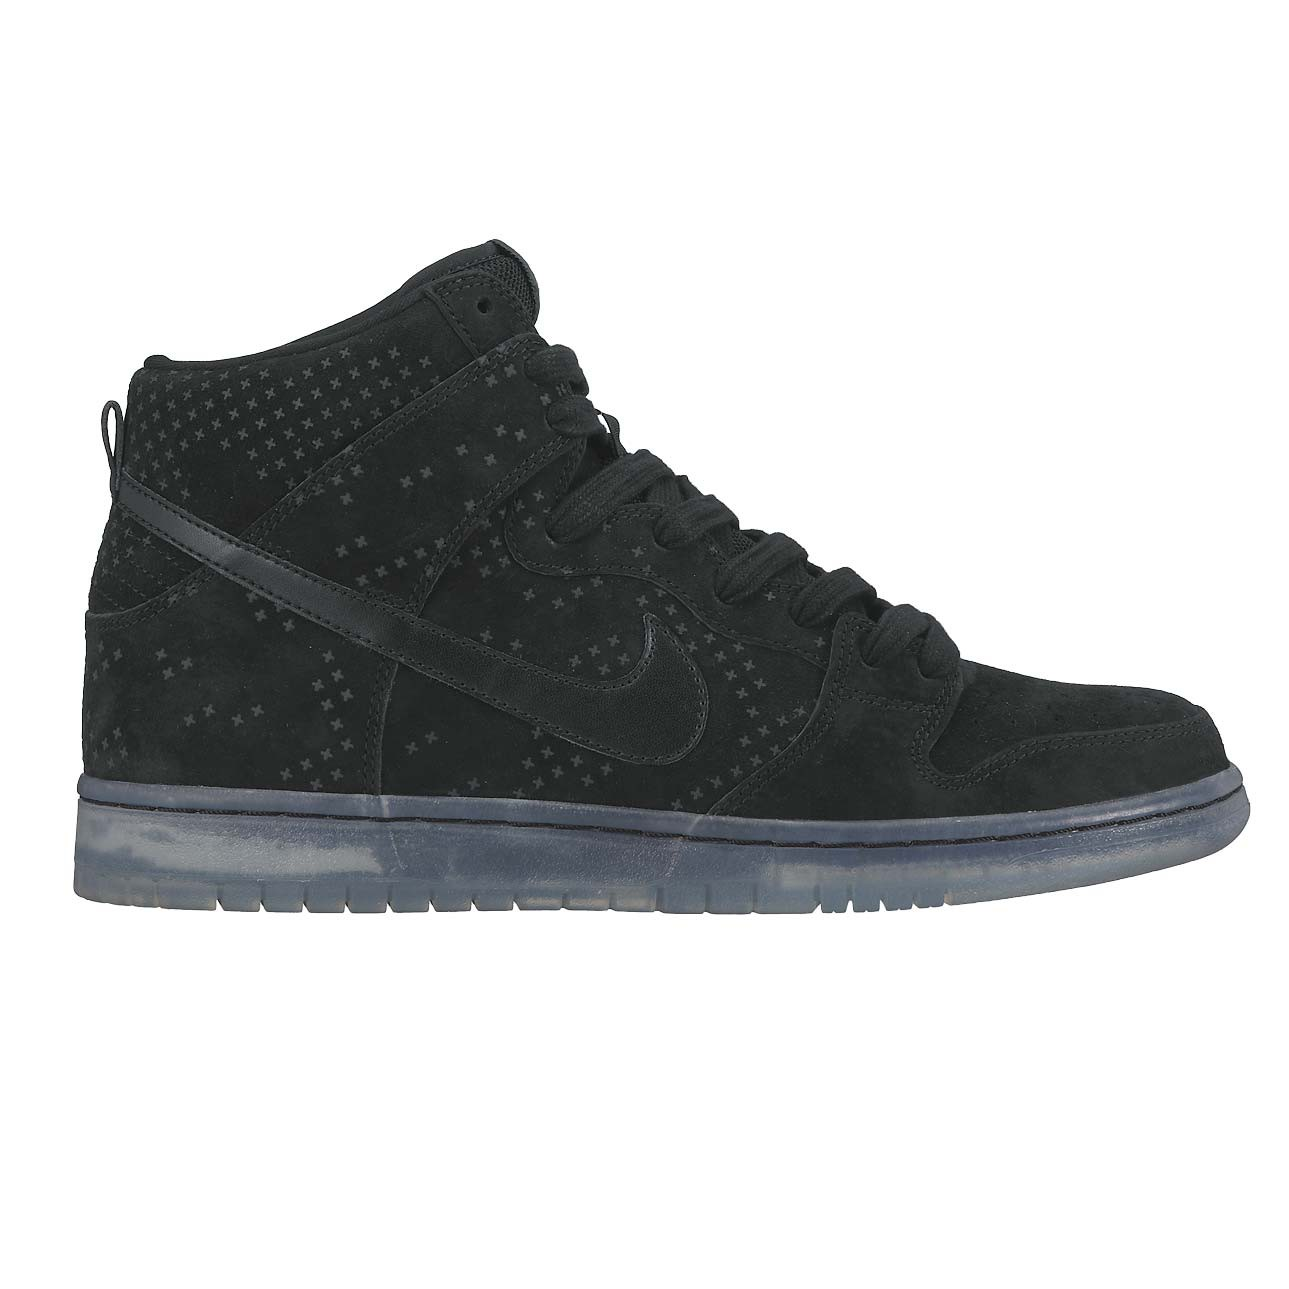 outlet store 473c0 72418 Nike SB Dunk High Premium Flash black black-clear   Snowboard Zezula